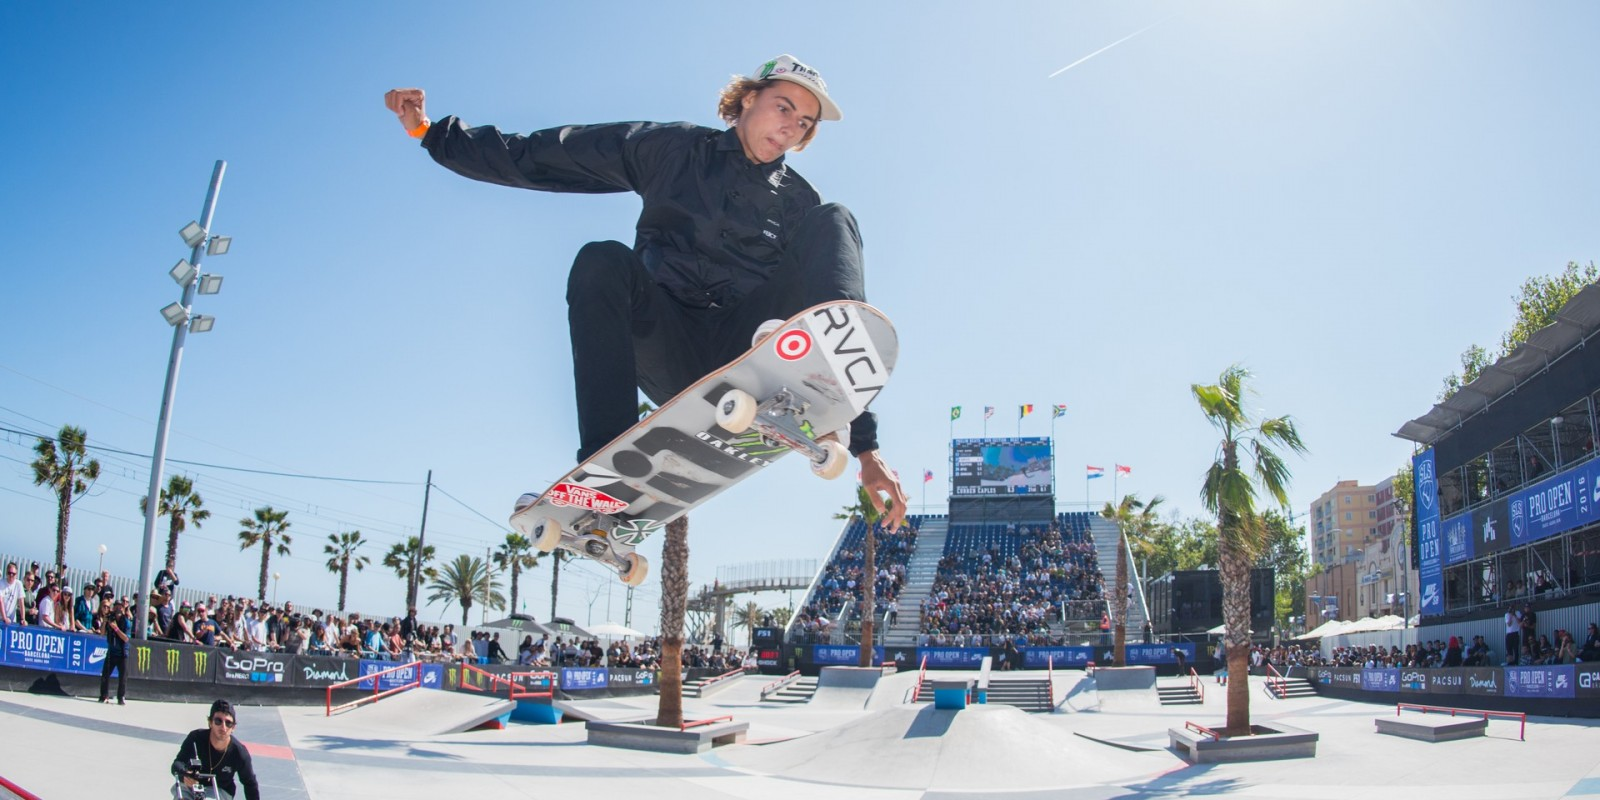 Monster athletes compete at the 2016 SLS Barcelona Pro Open